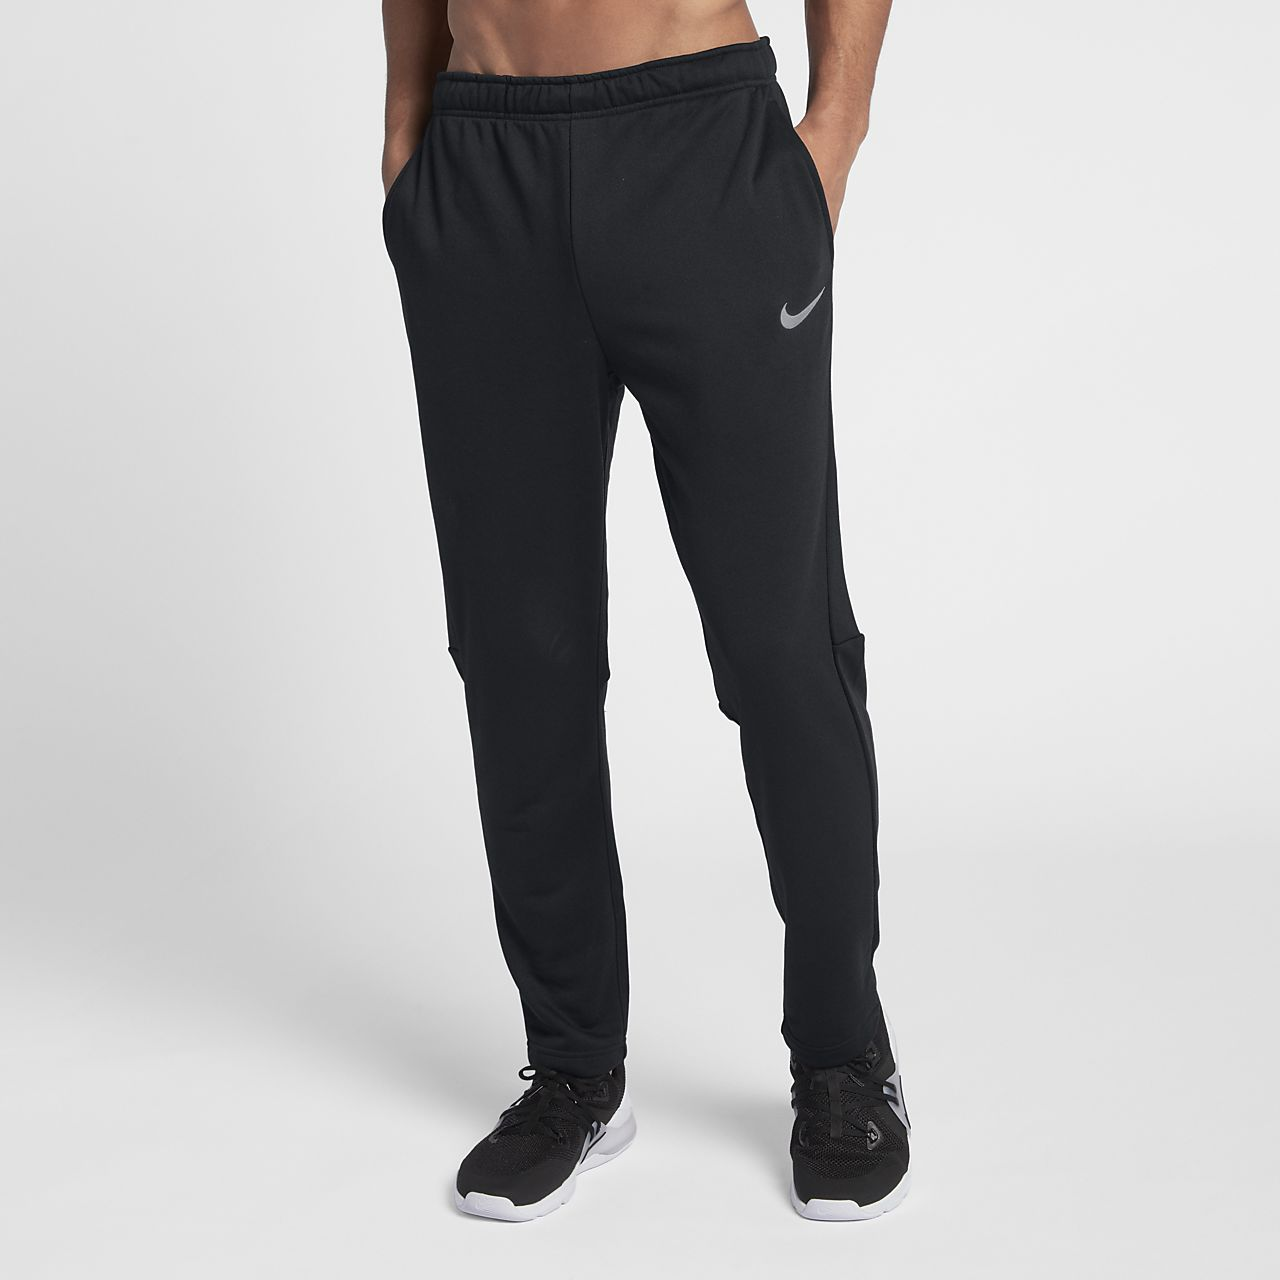 812ca67e719a Nike Dri-FIT Men s Training Pants. Nike.com